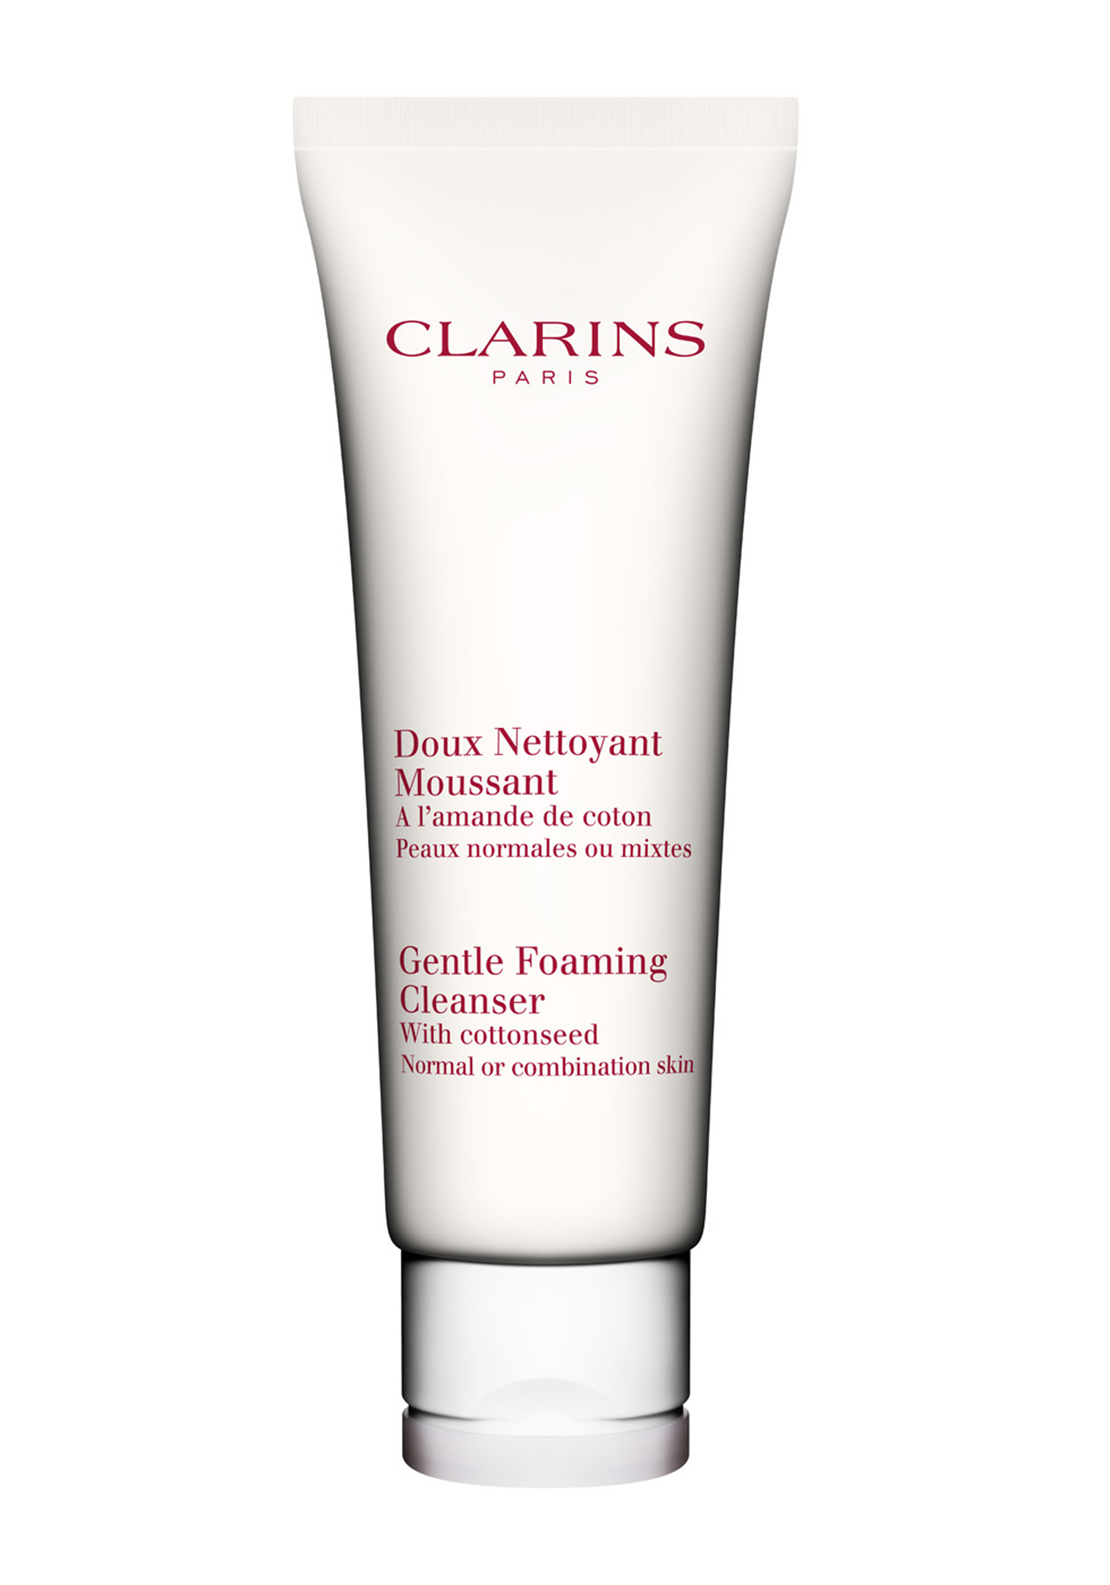 Clarins Gentle Foaming Cleanser with Cottonseed, 125ml